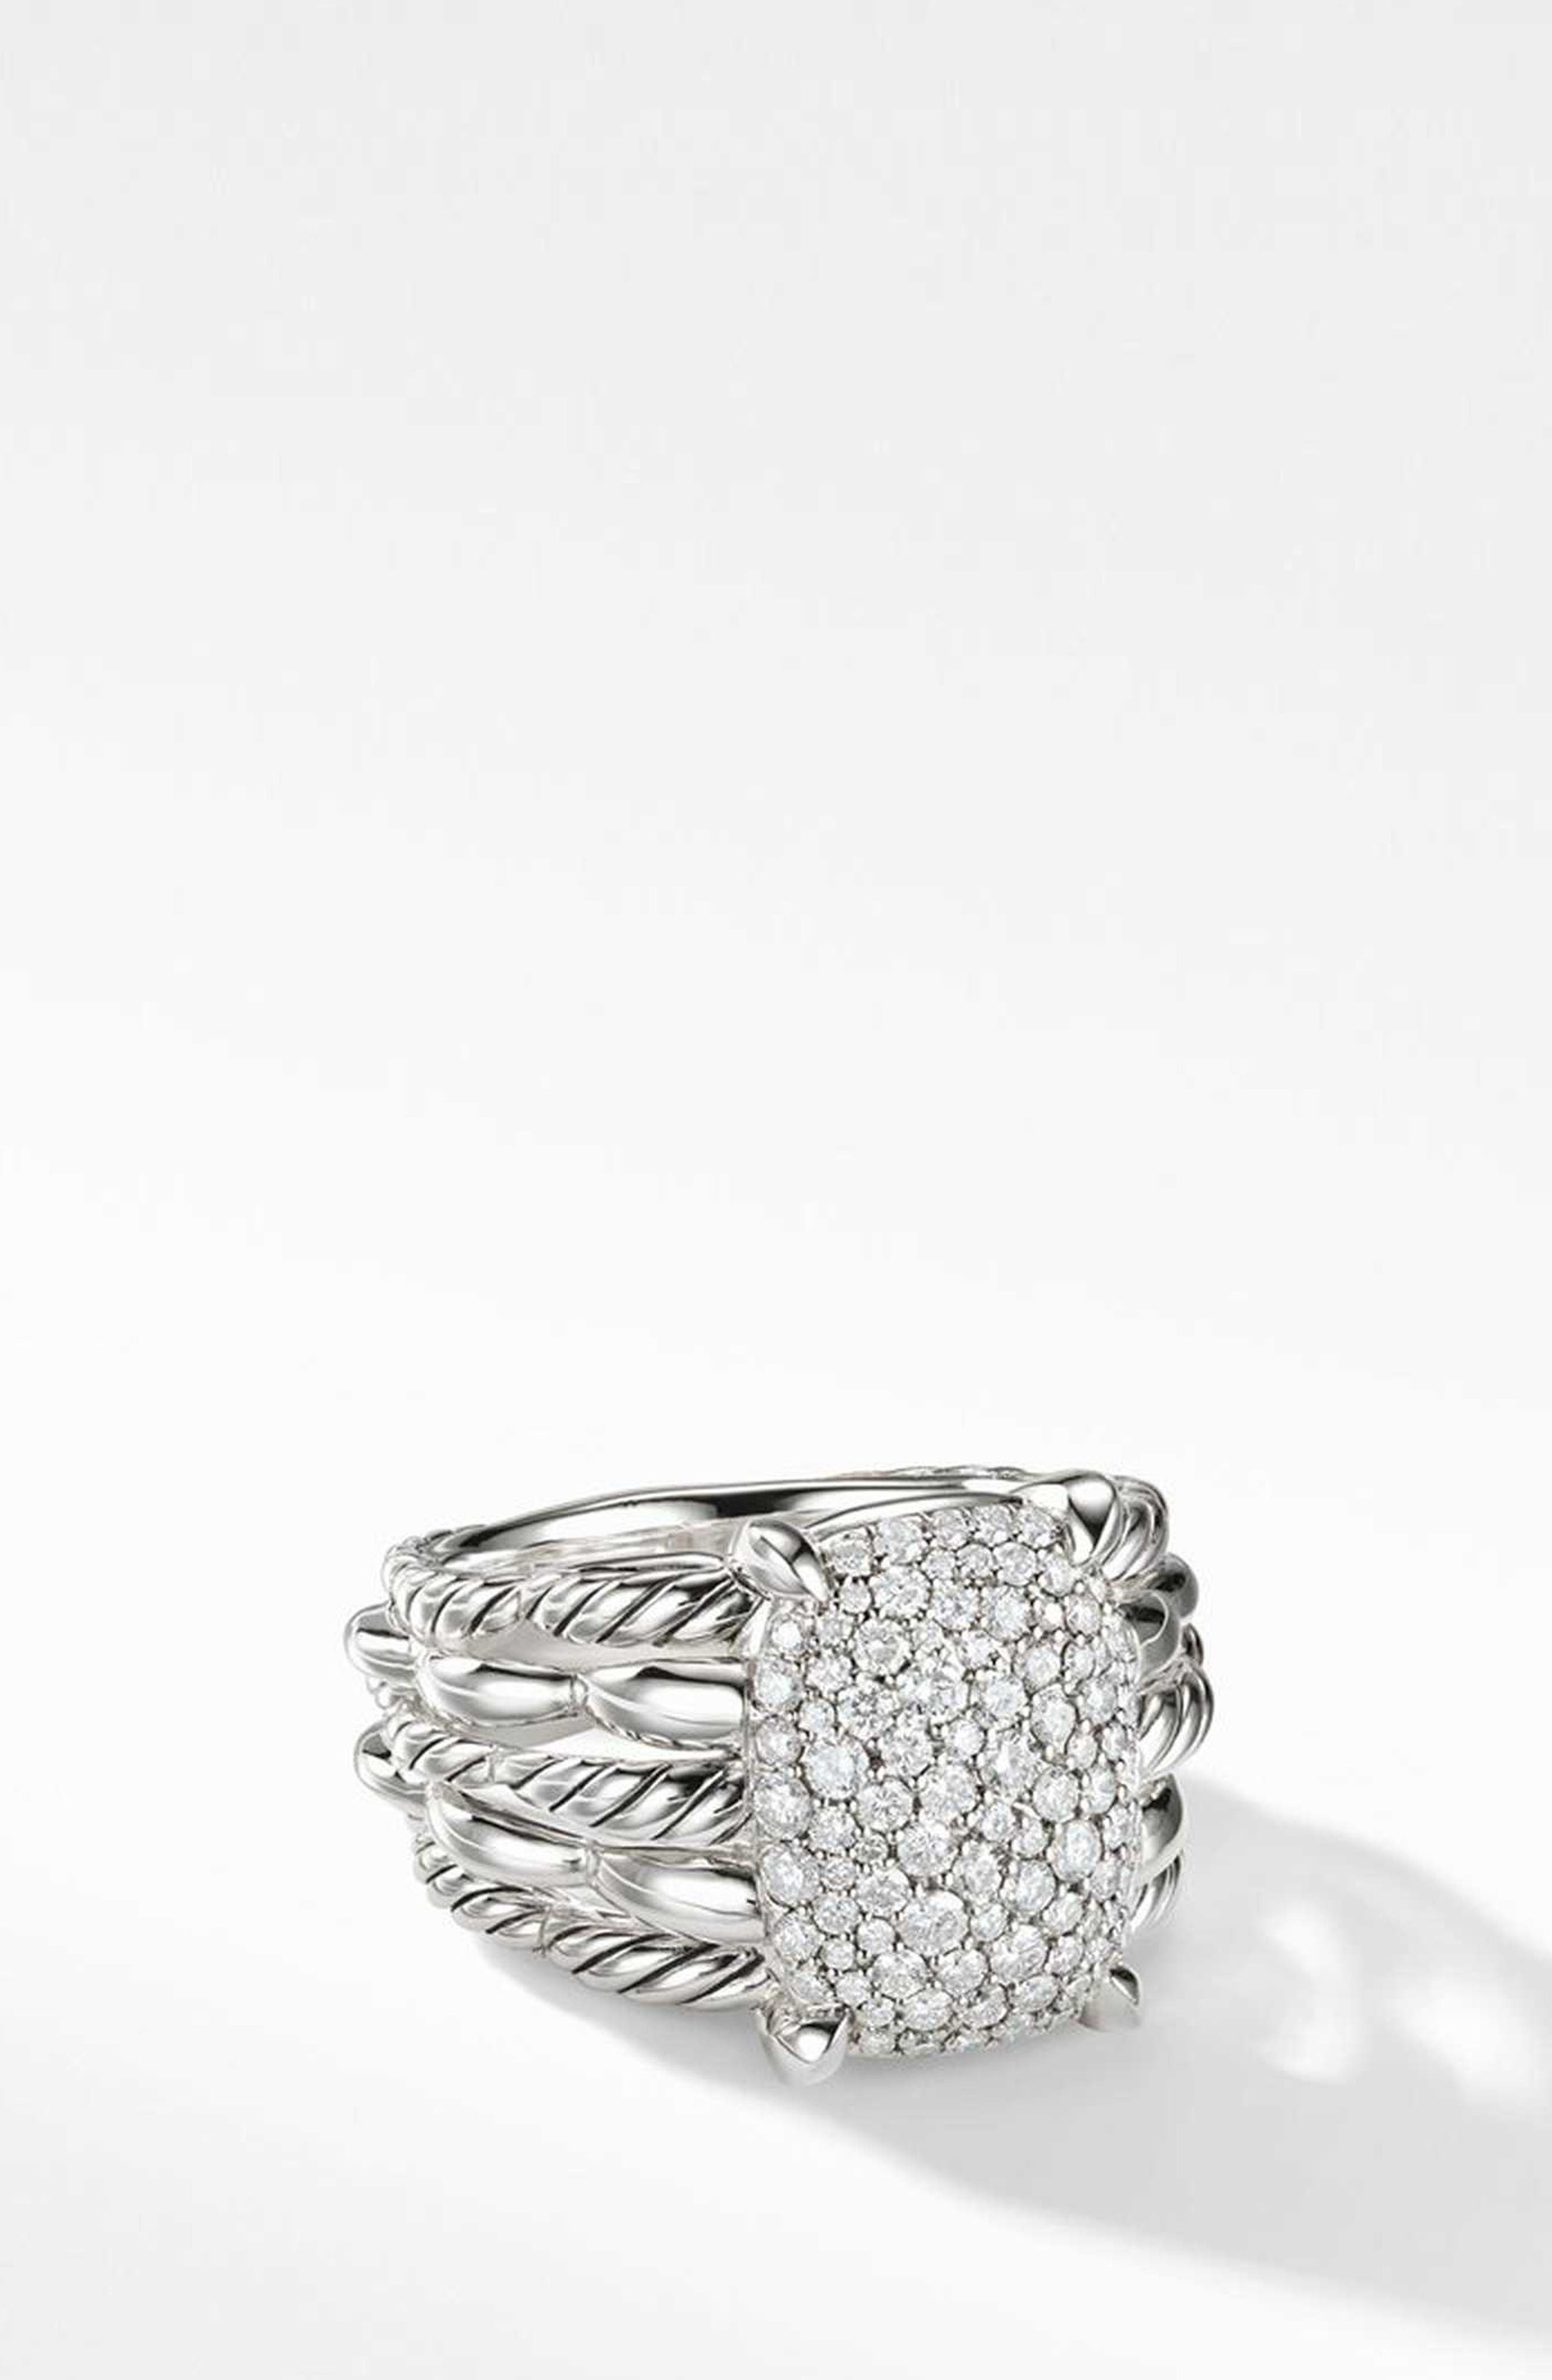 Tides Statement Ring with Pavé Plate,                             Main thumbnail 1, color,                             STERLING SILVER/ DIAMOND